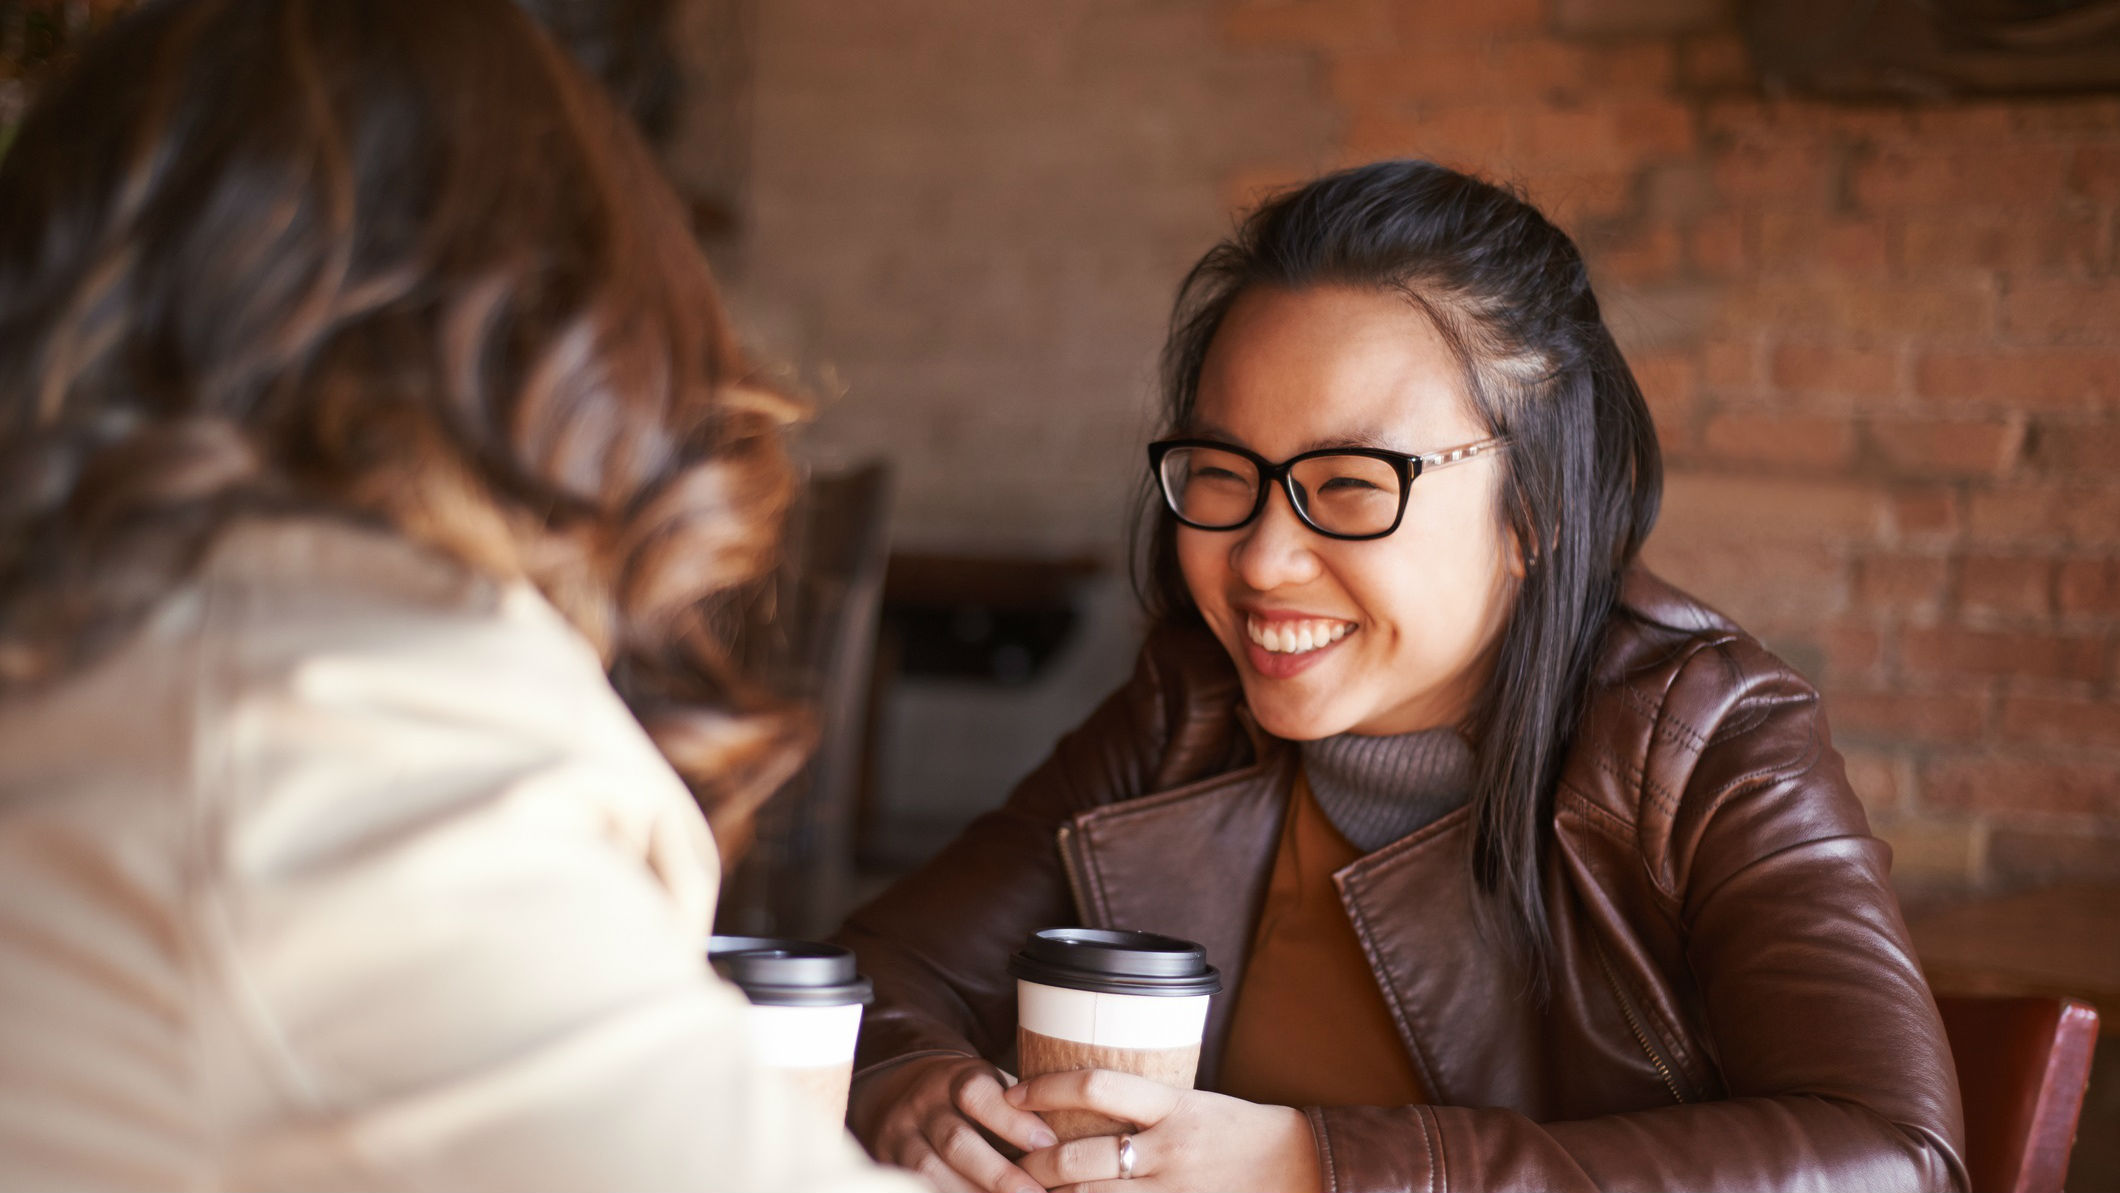 Woman smiling holding cup of coffee